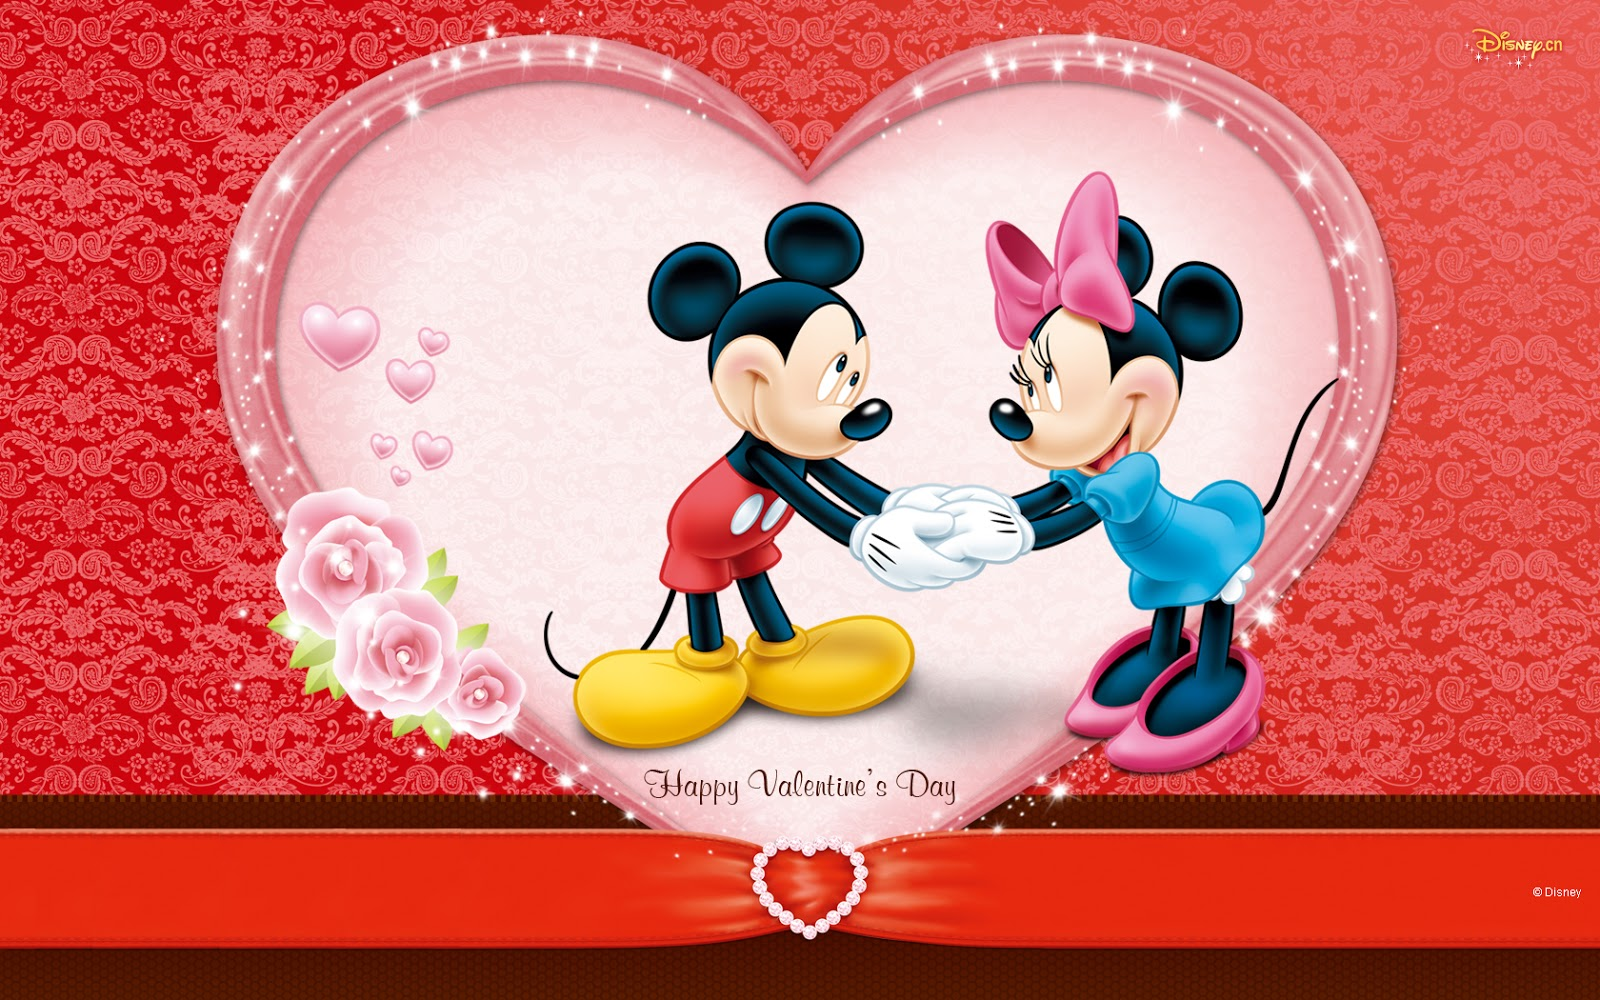 2013 Valentine Card, E-Cards 2013: Top 10 Valentines Day Desktop Wallpap...